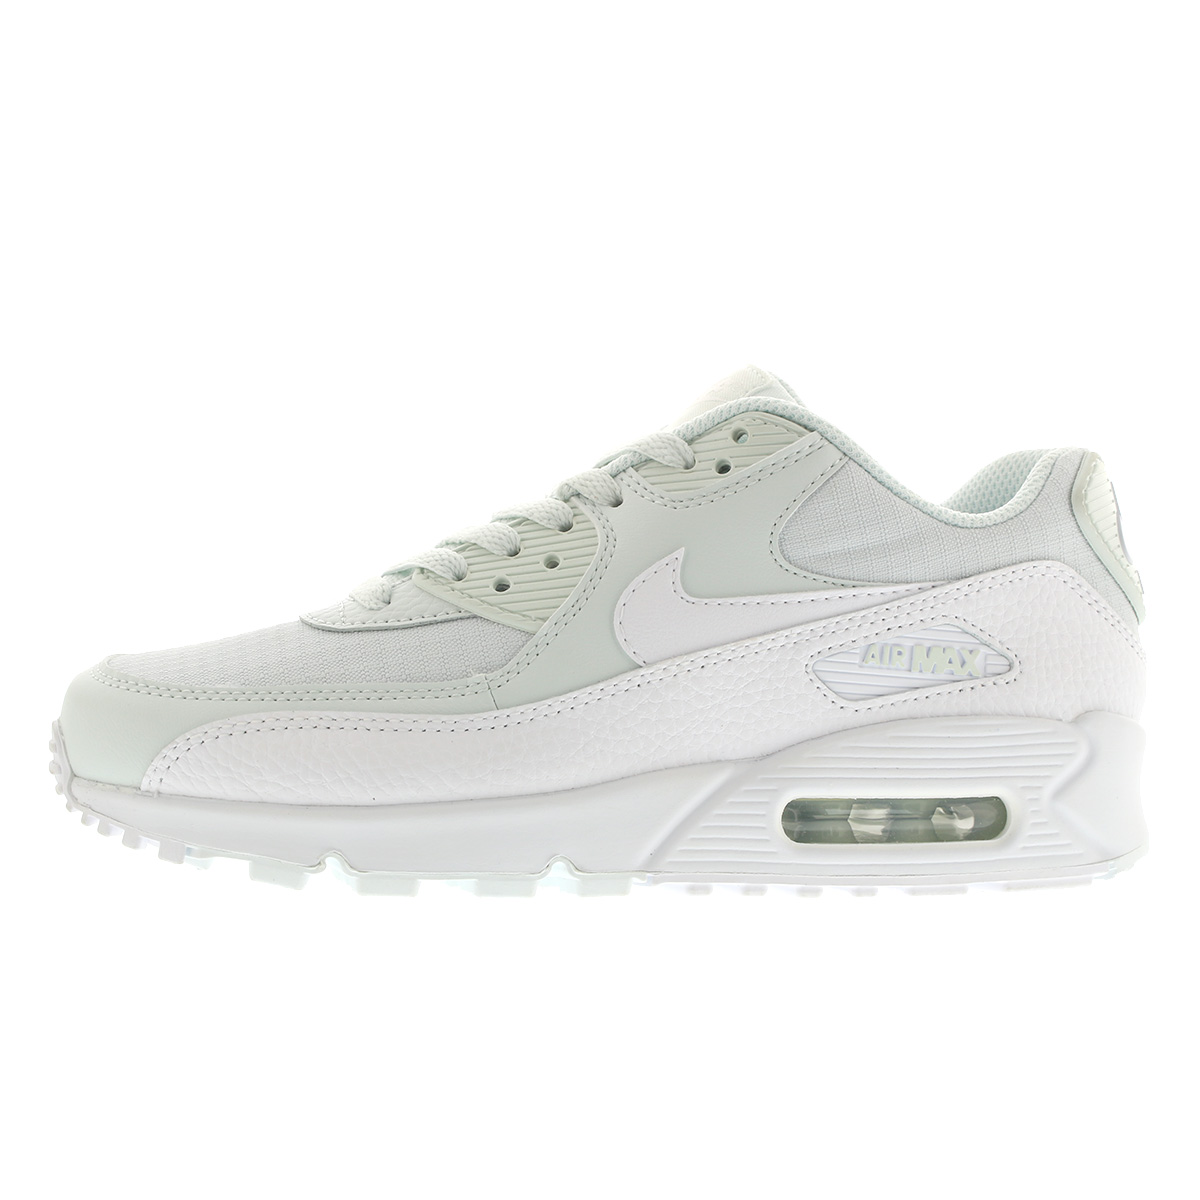 NIKE Air Max 90 325213 419 Ghost Aqua White Authentic New